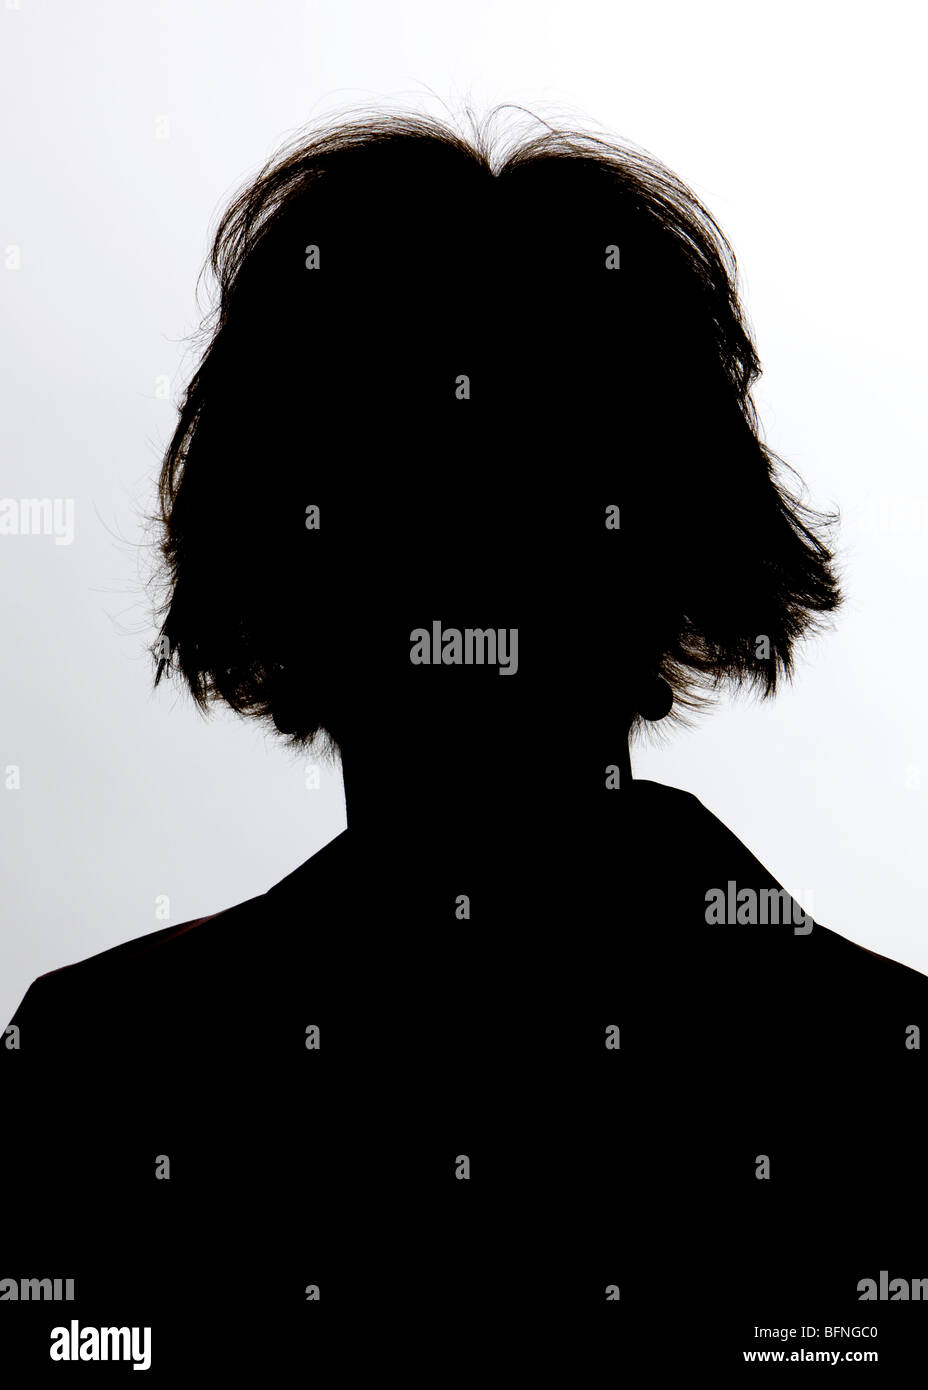 A person in shadow - Stock Image